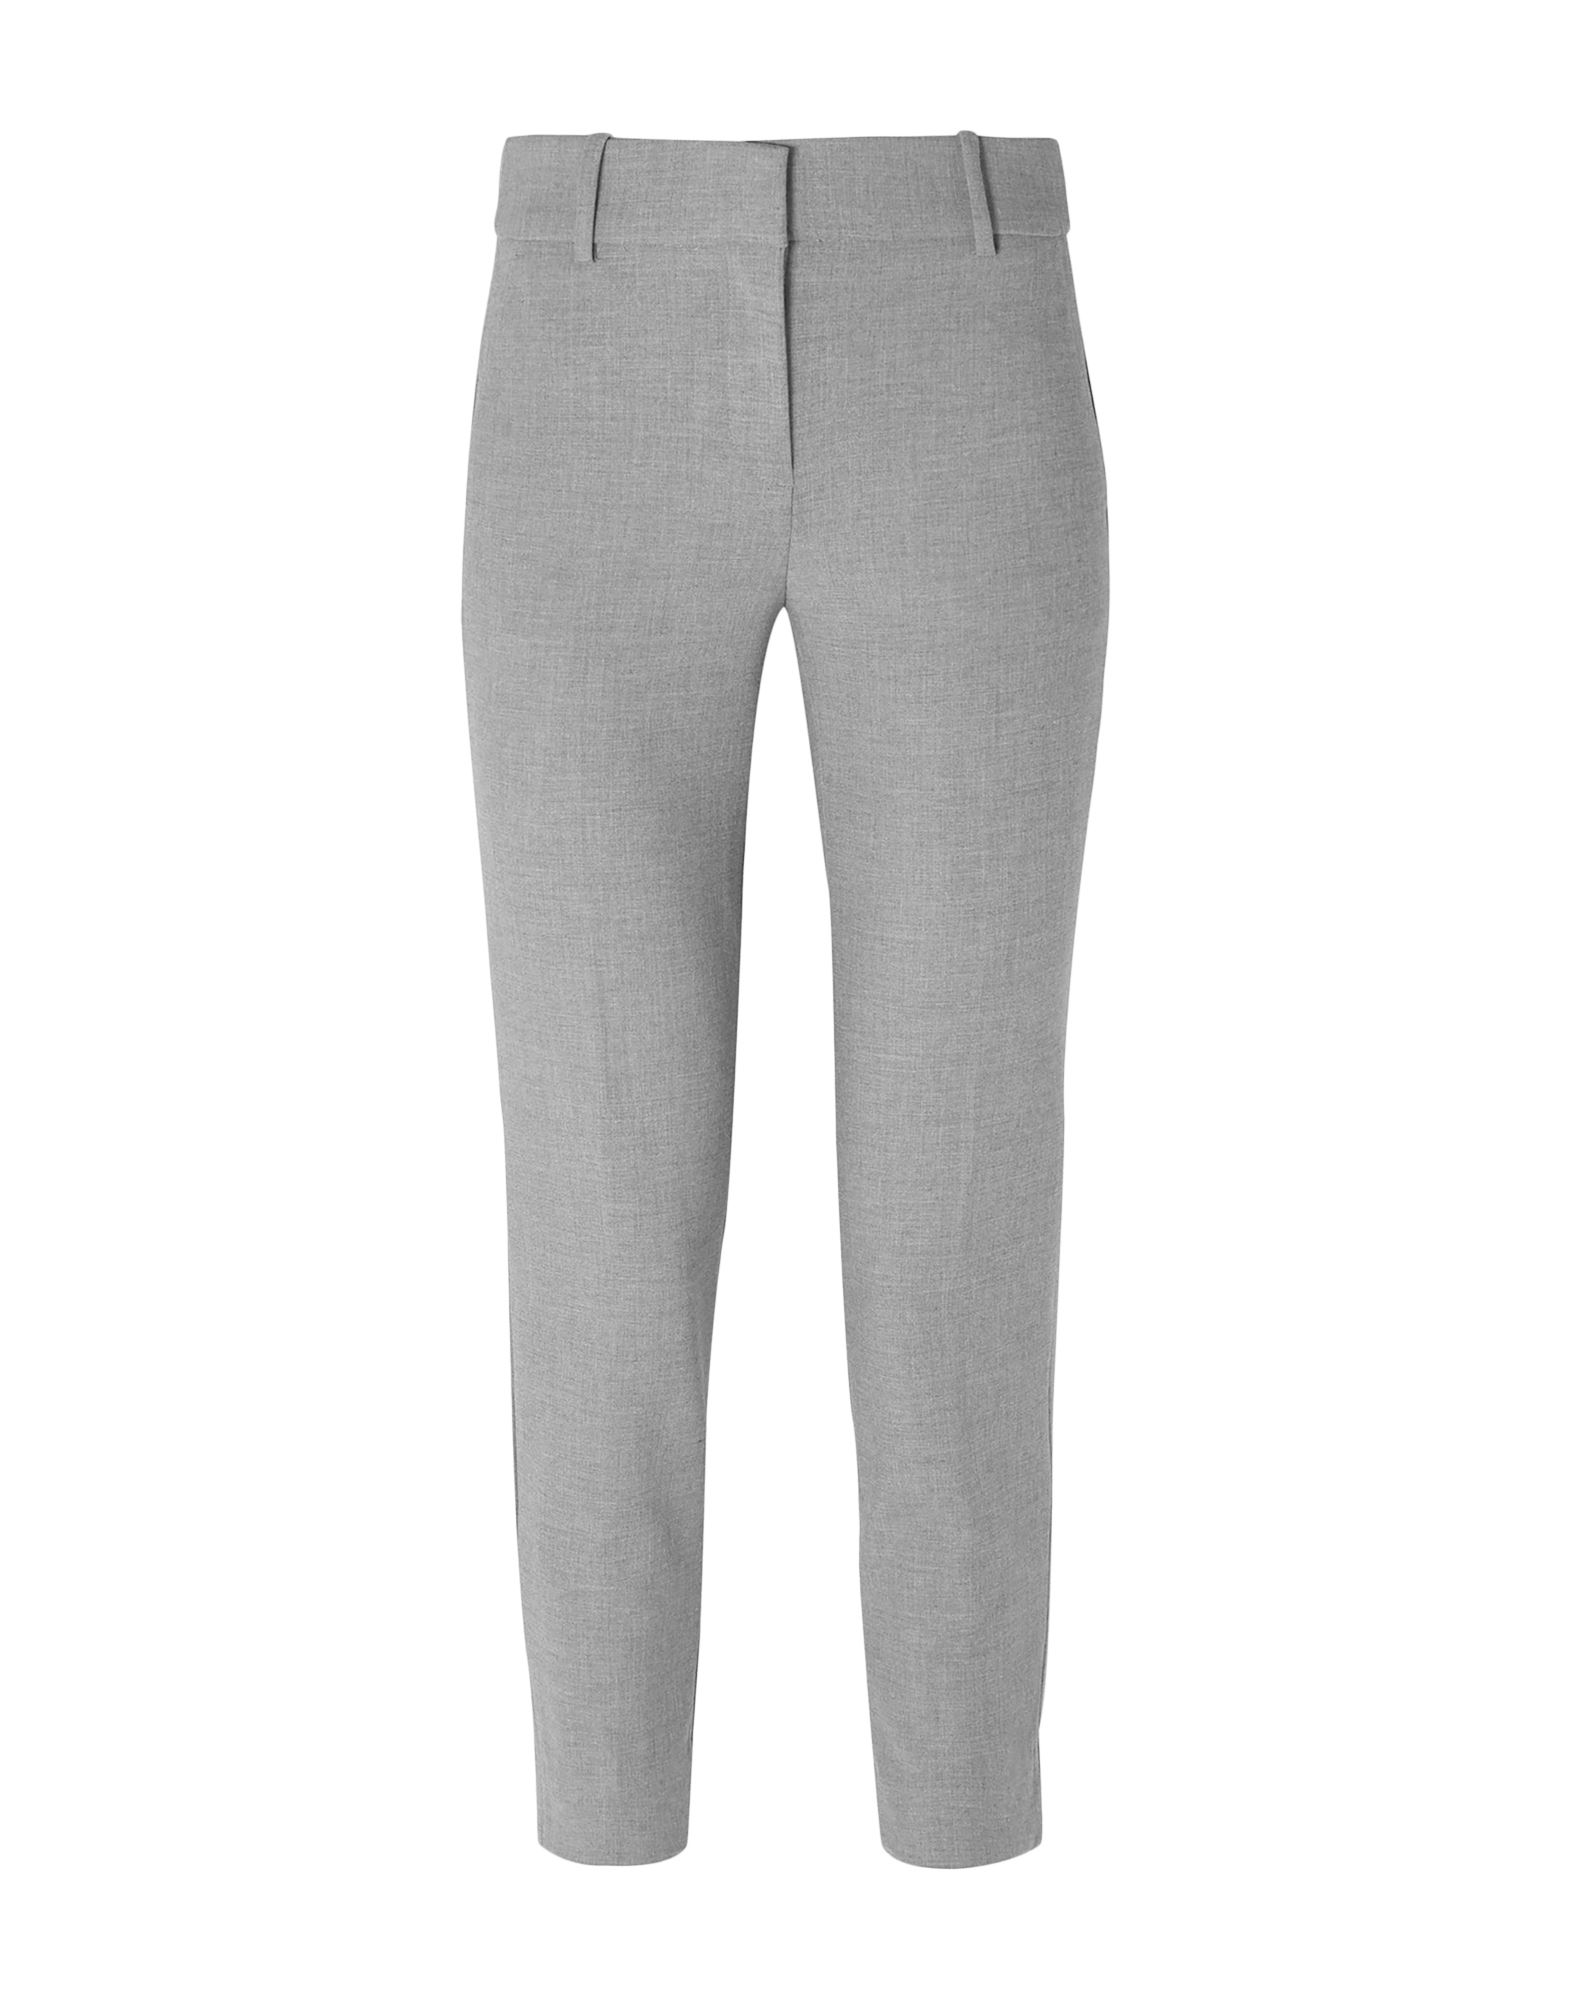 J.CREW Casual pants. crepe, no appliqués, basic solid color, mid rise, regular fit, tapered leg, hook-and-bar, zip, multipockets, stretch. 64% Polyester, 31% Viscose, 5% Elastane